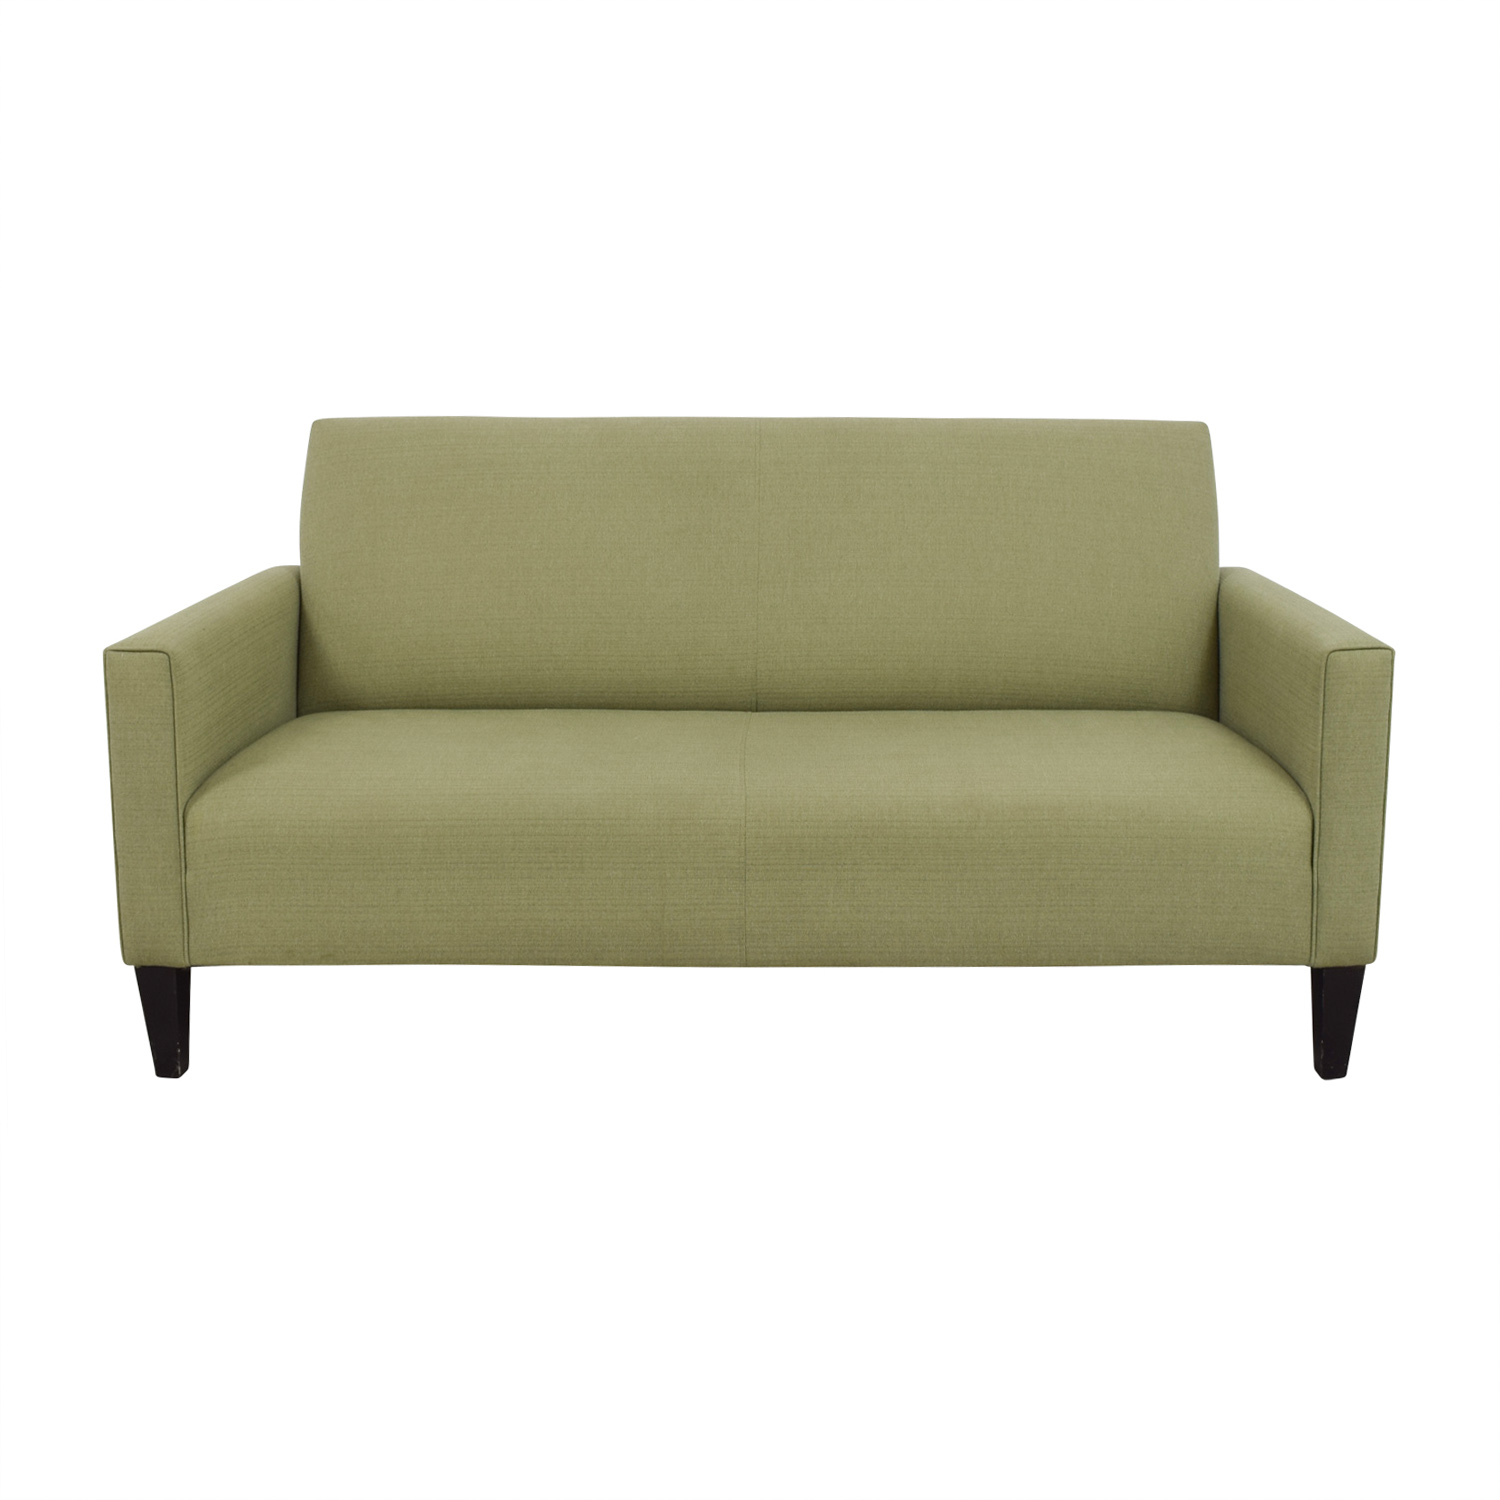 buy Crate & Barrel Moss Green Single Cushion Couch Crate & Barrel Sofas